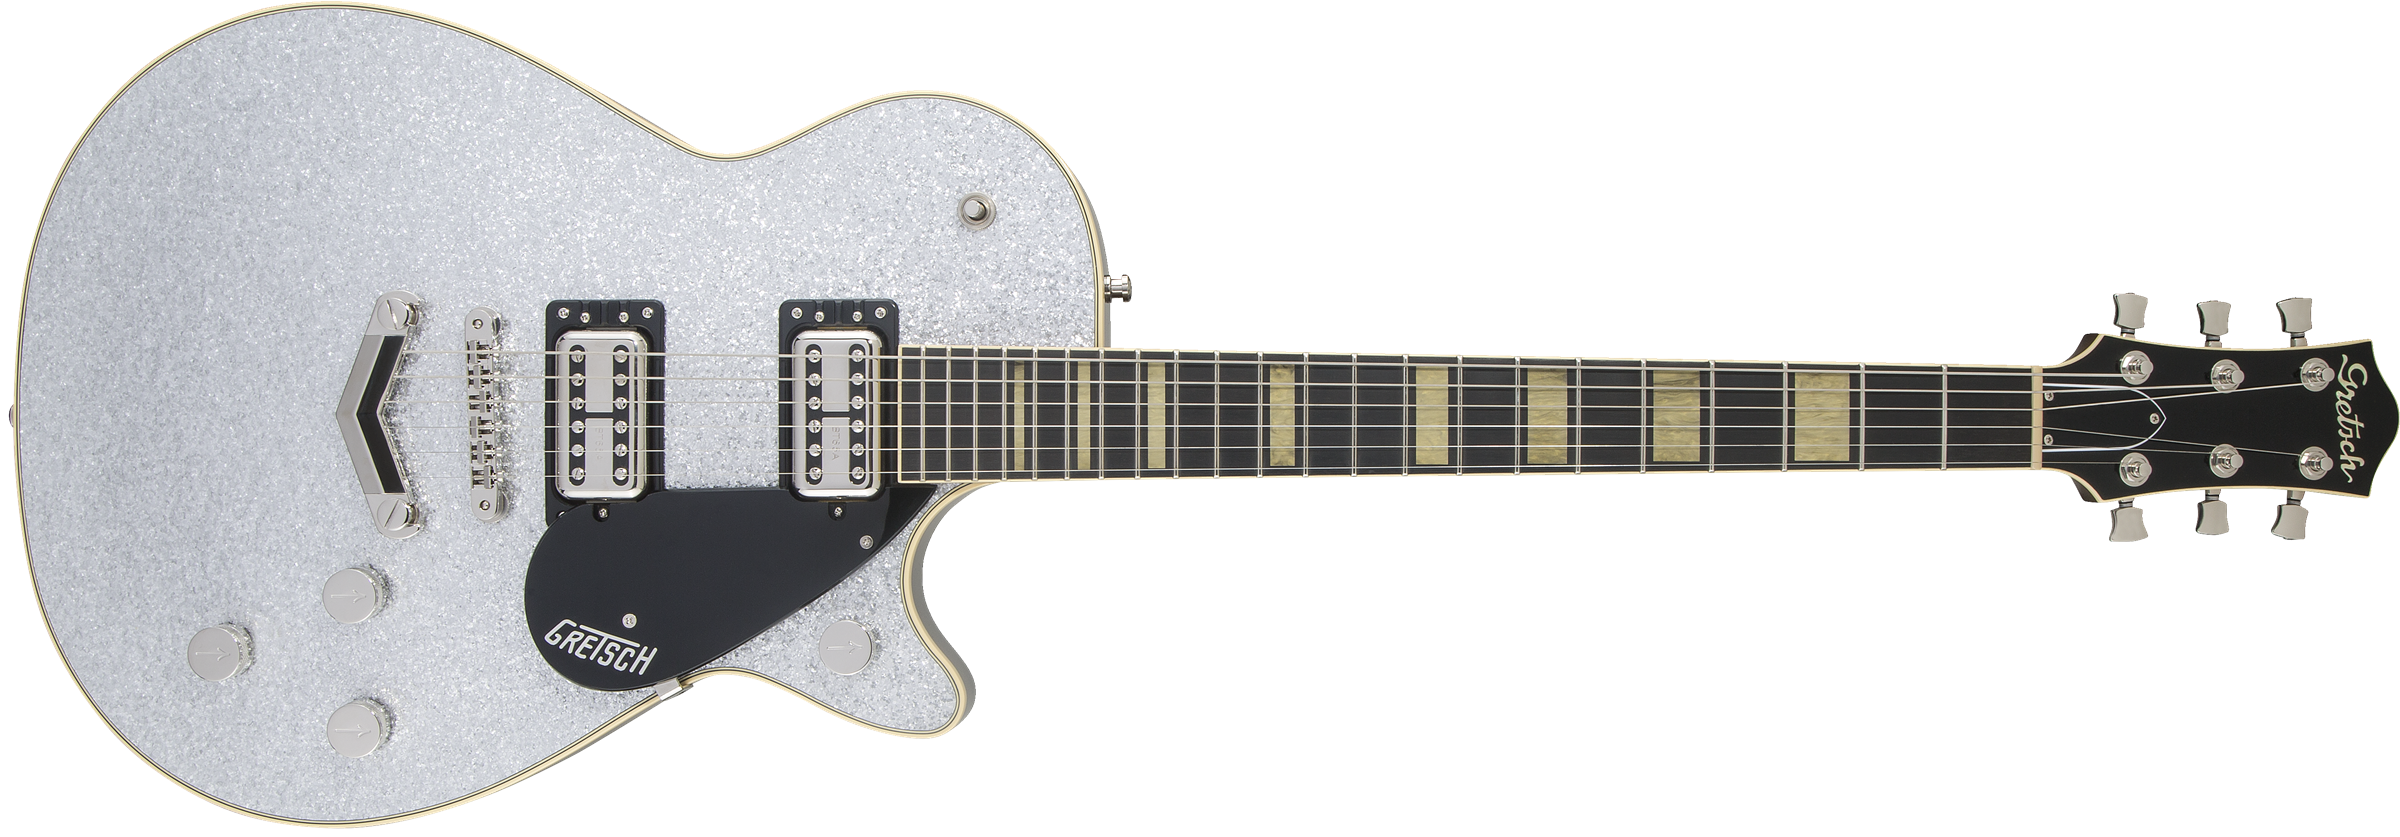 GRETSCH-G6229-Players-Edition-Jet-BT-with-V-Stoptail-Rosewood-Fingerboard-Silver-Sparkle-sku-571002878